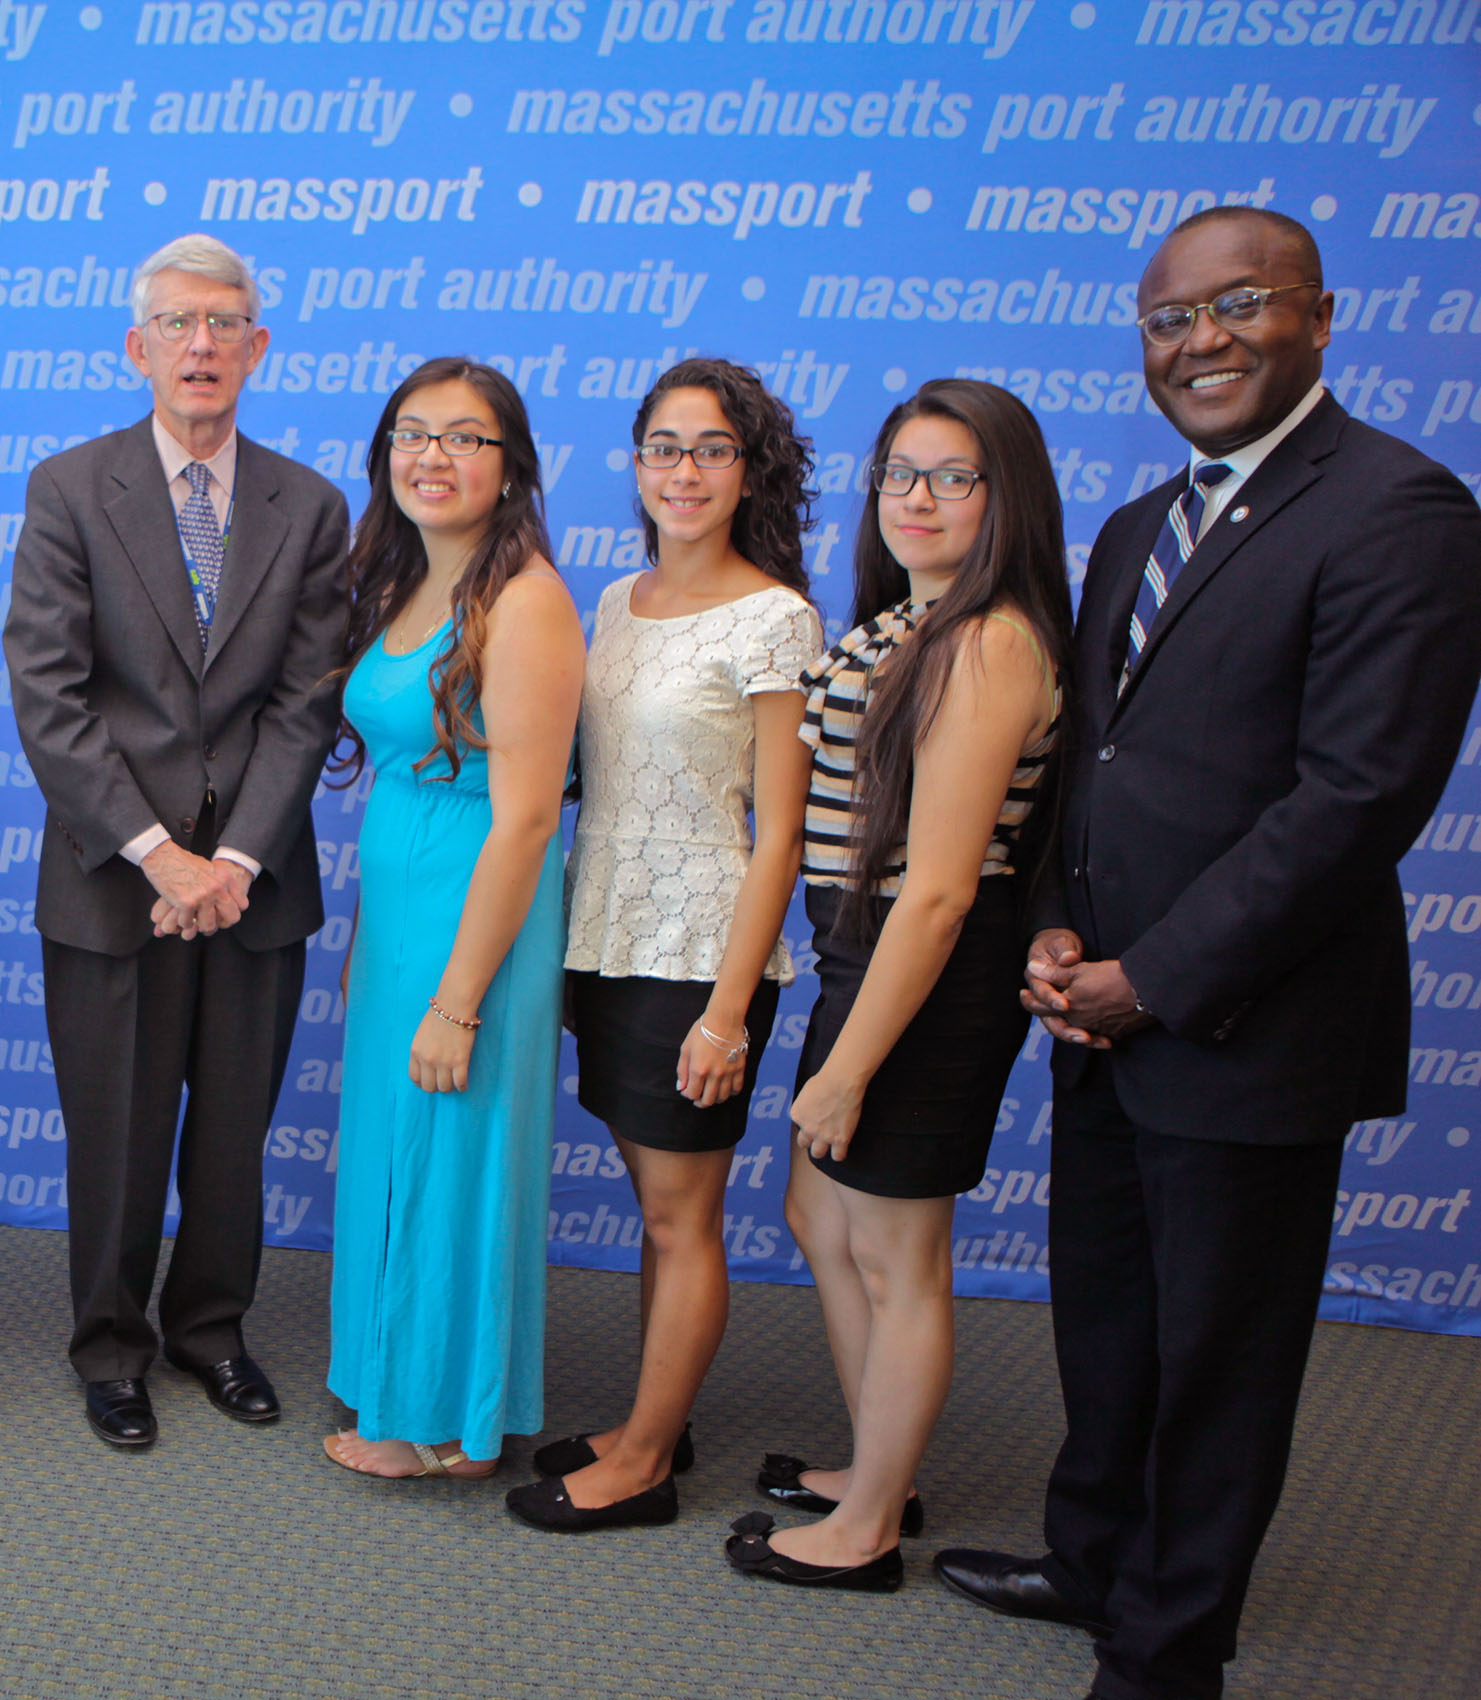 image of 2014 - Massport Diversity Scholarship Recipients